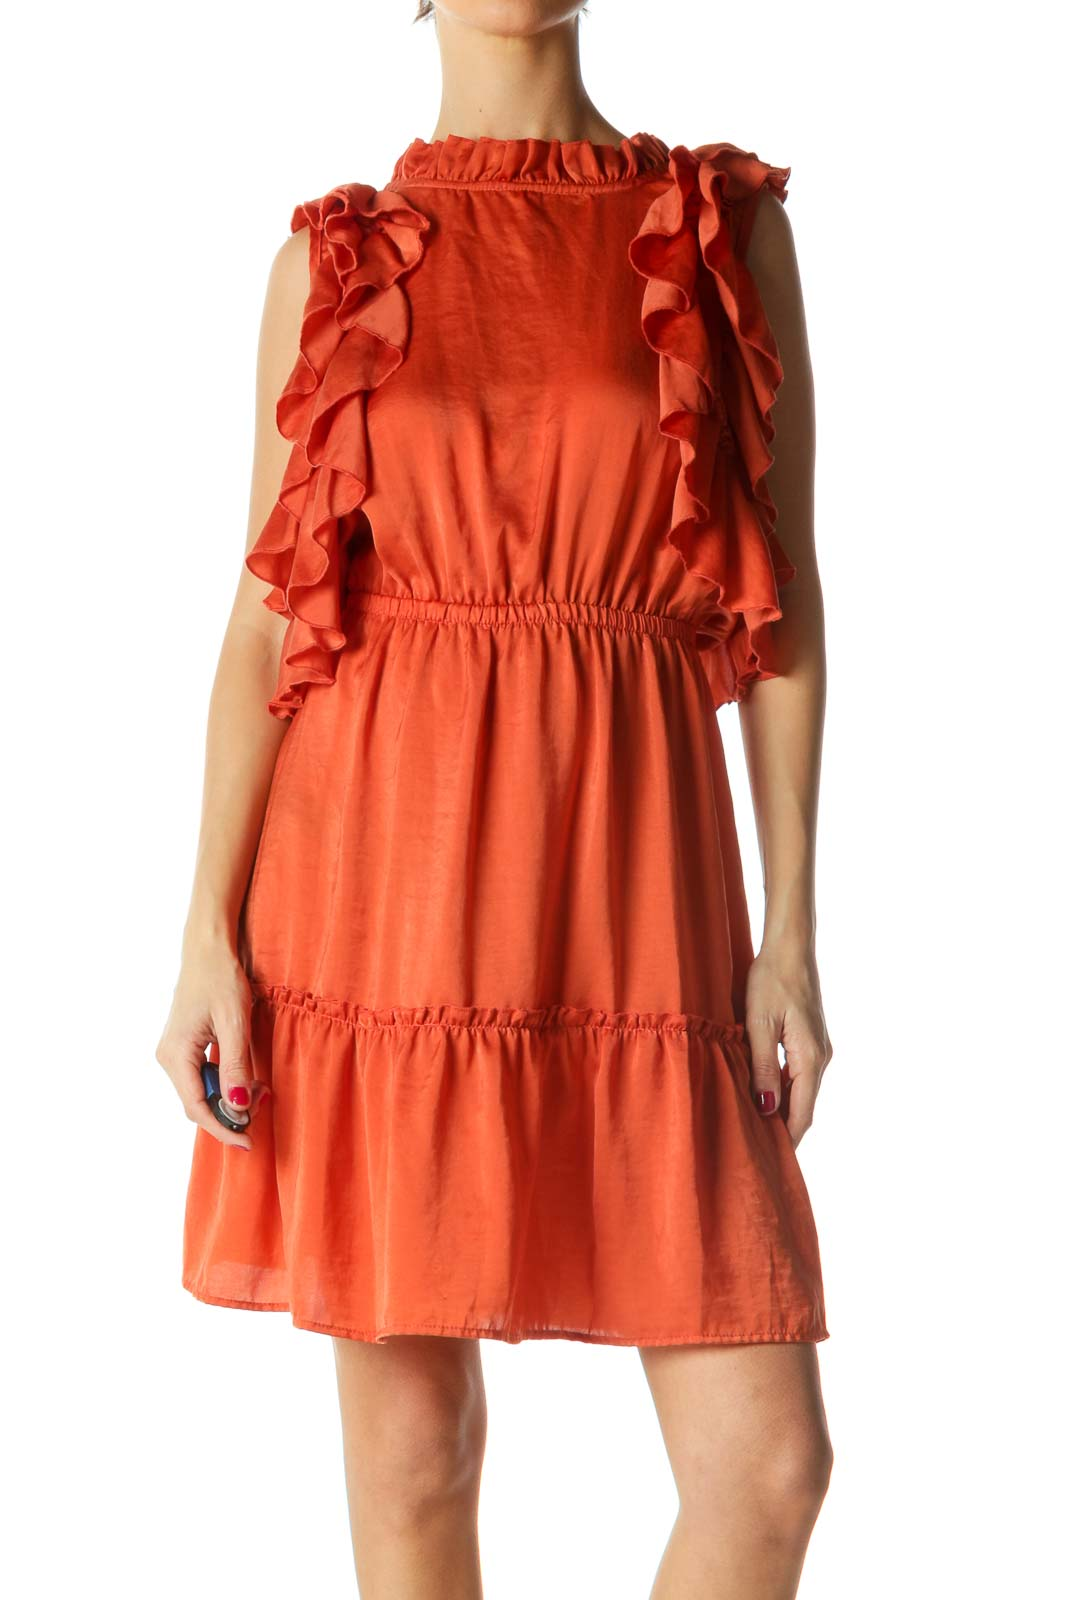 Orange Ruffled Dress Front